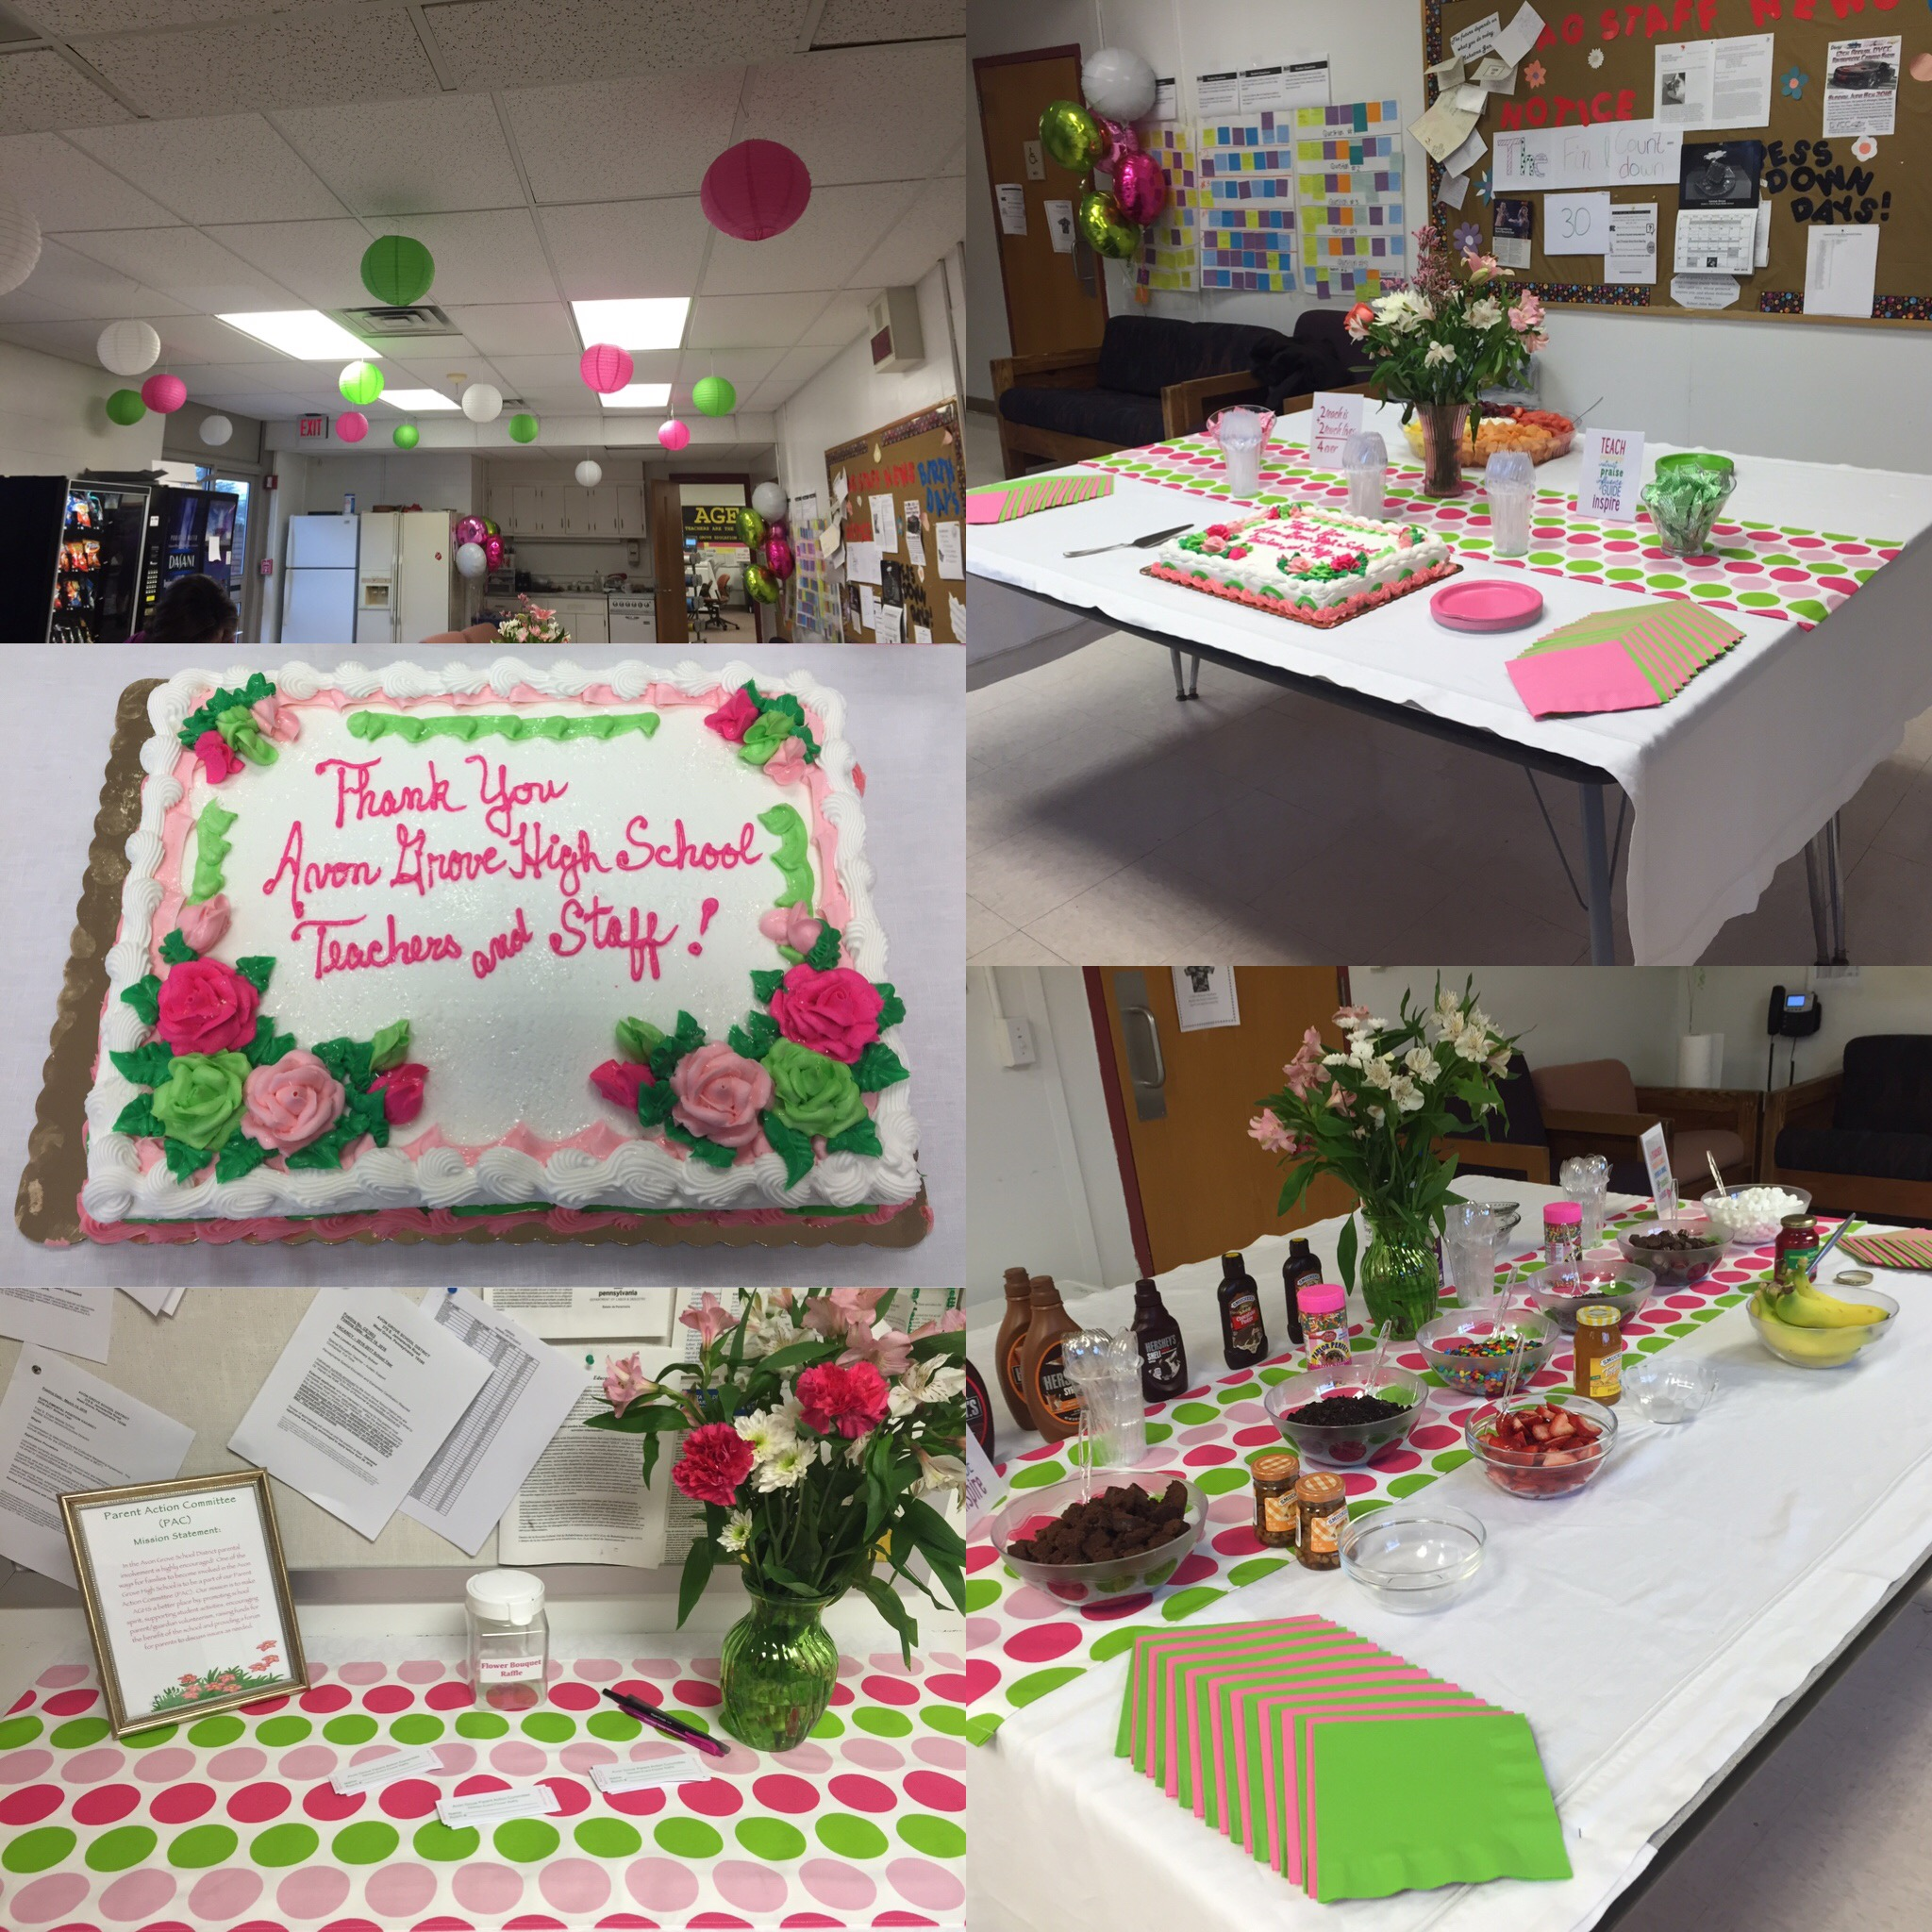 Cake and decorations for teacher appreciaiton day.